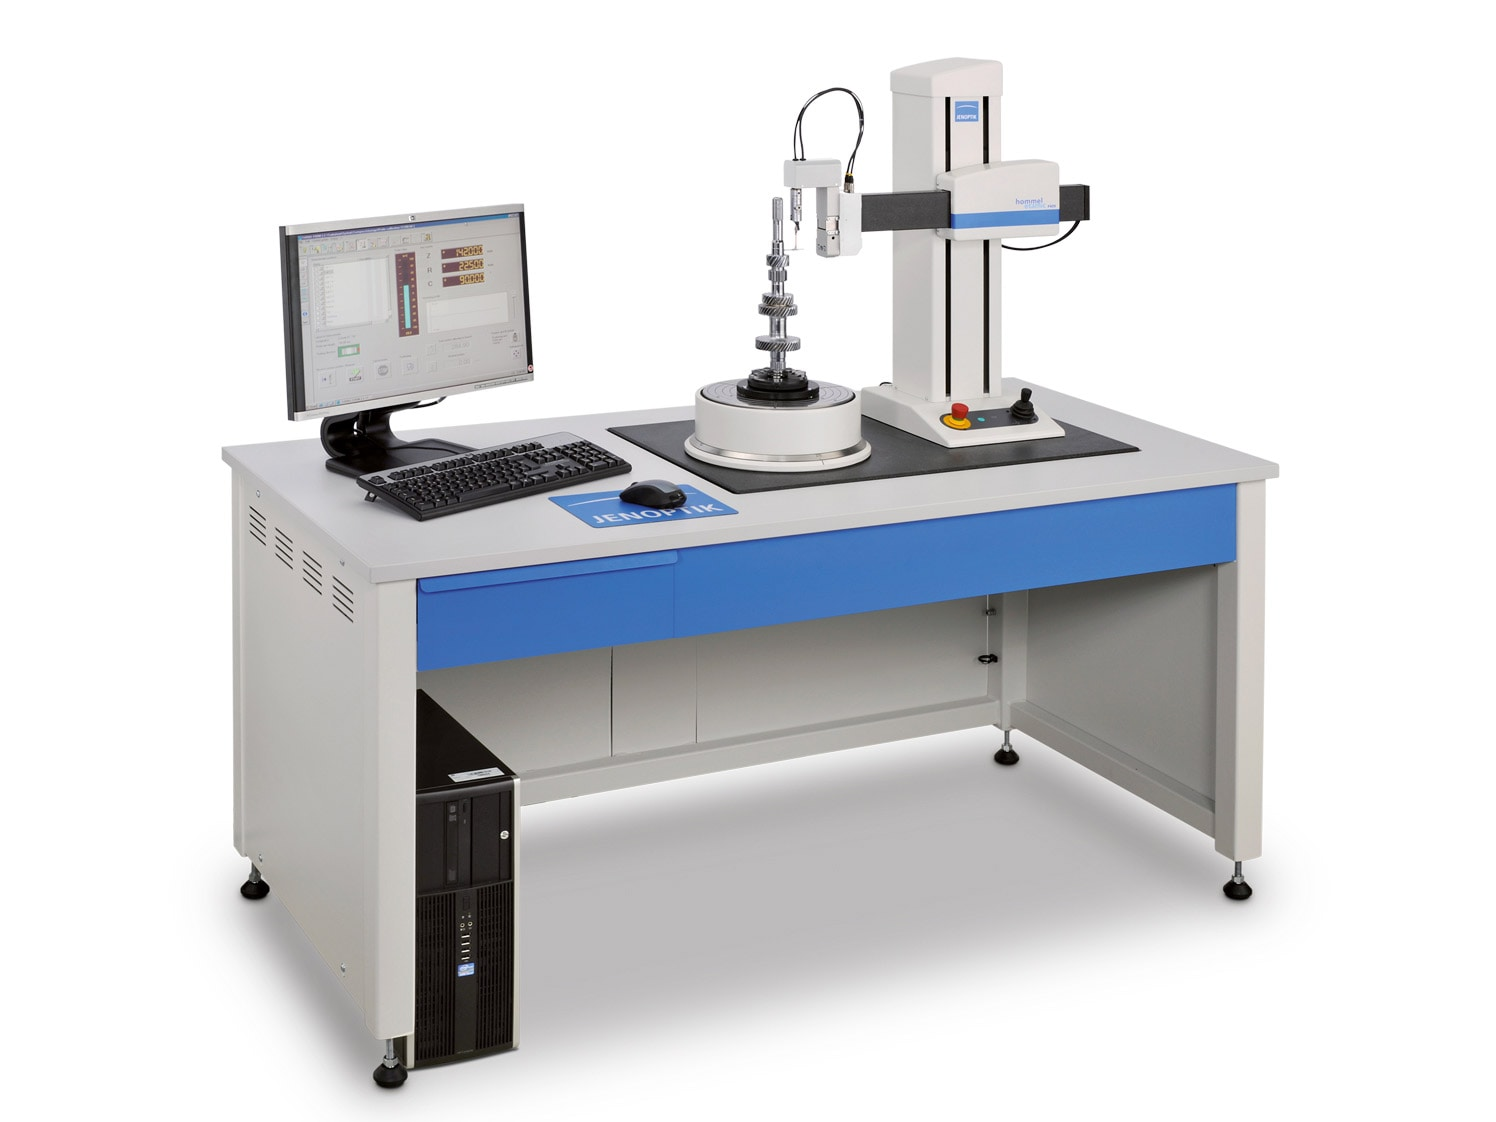 Hommel-Etamic F435 and F455 - -as compact table-top units or integrated in an ergonomic measuring station